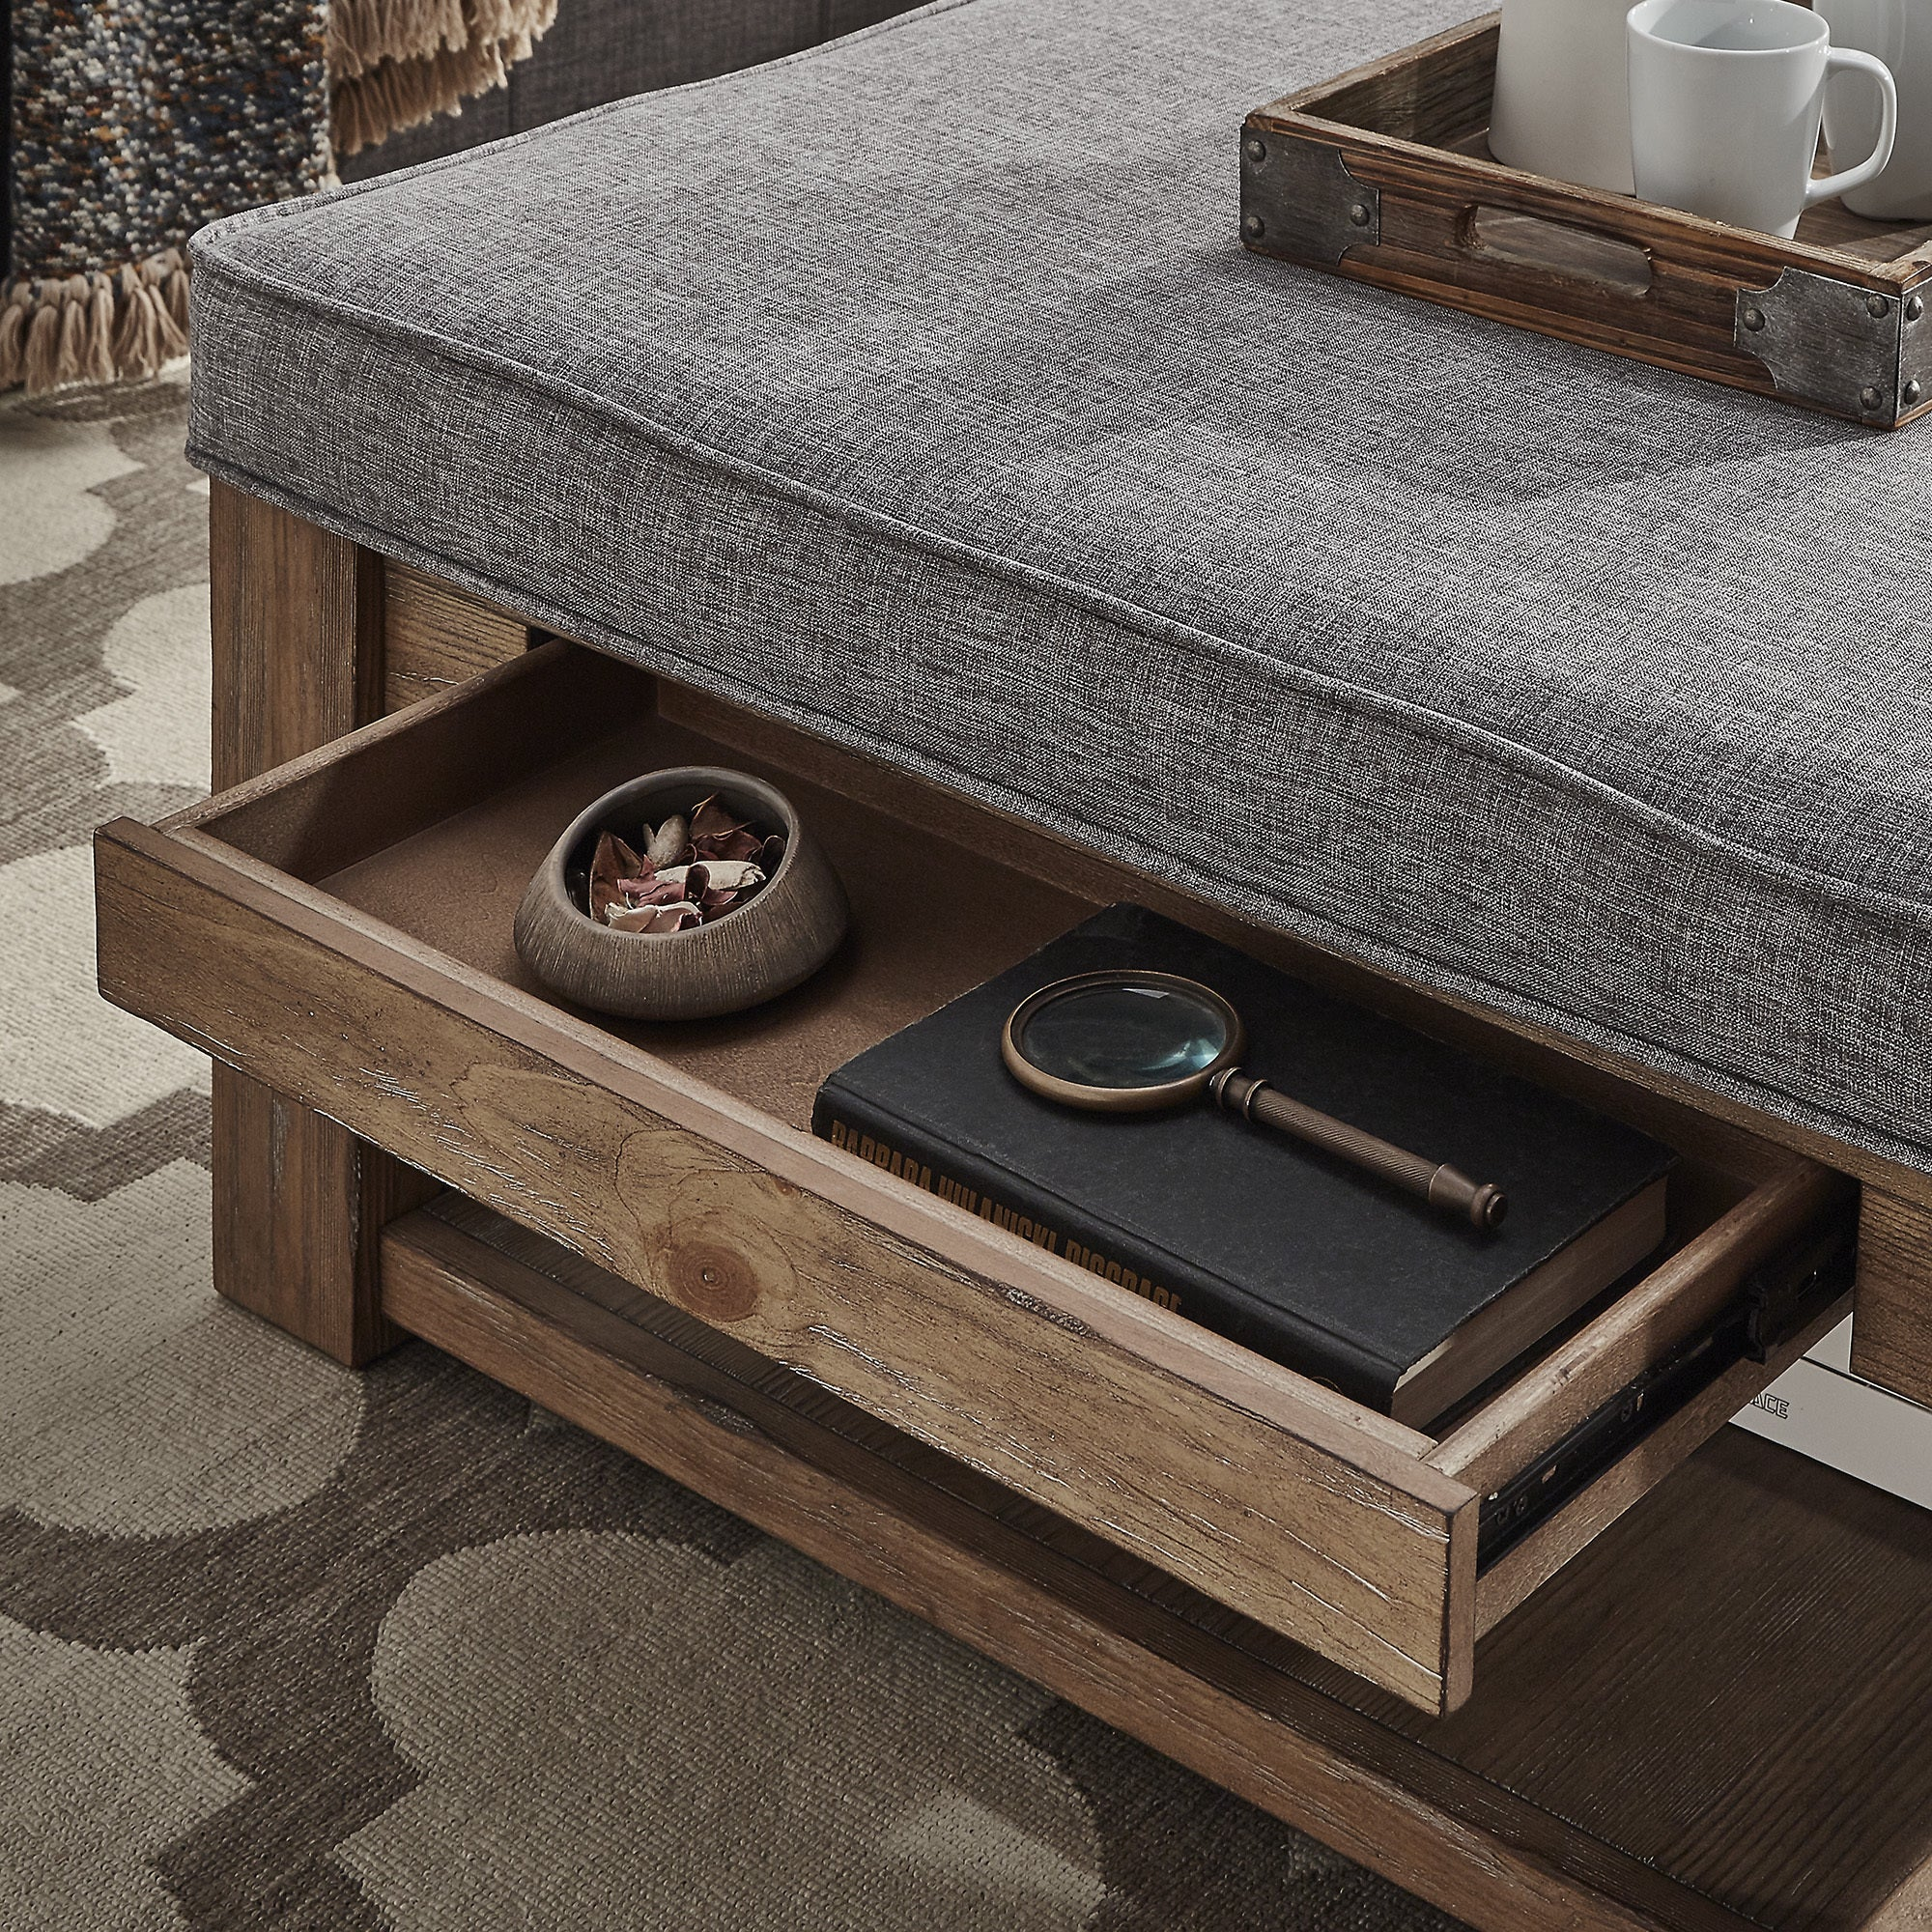 Phenomenal Details About Lennon Pine Square Storage Ottoman Coffee Table By Inspire Q Cjindustries Chair Design For Home Cjindustriesco